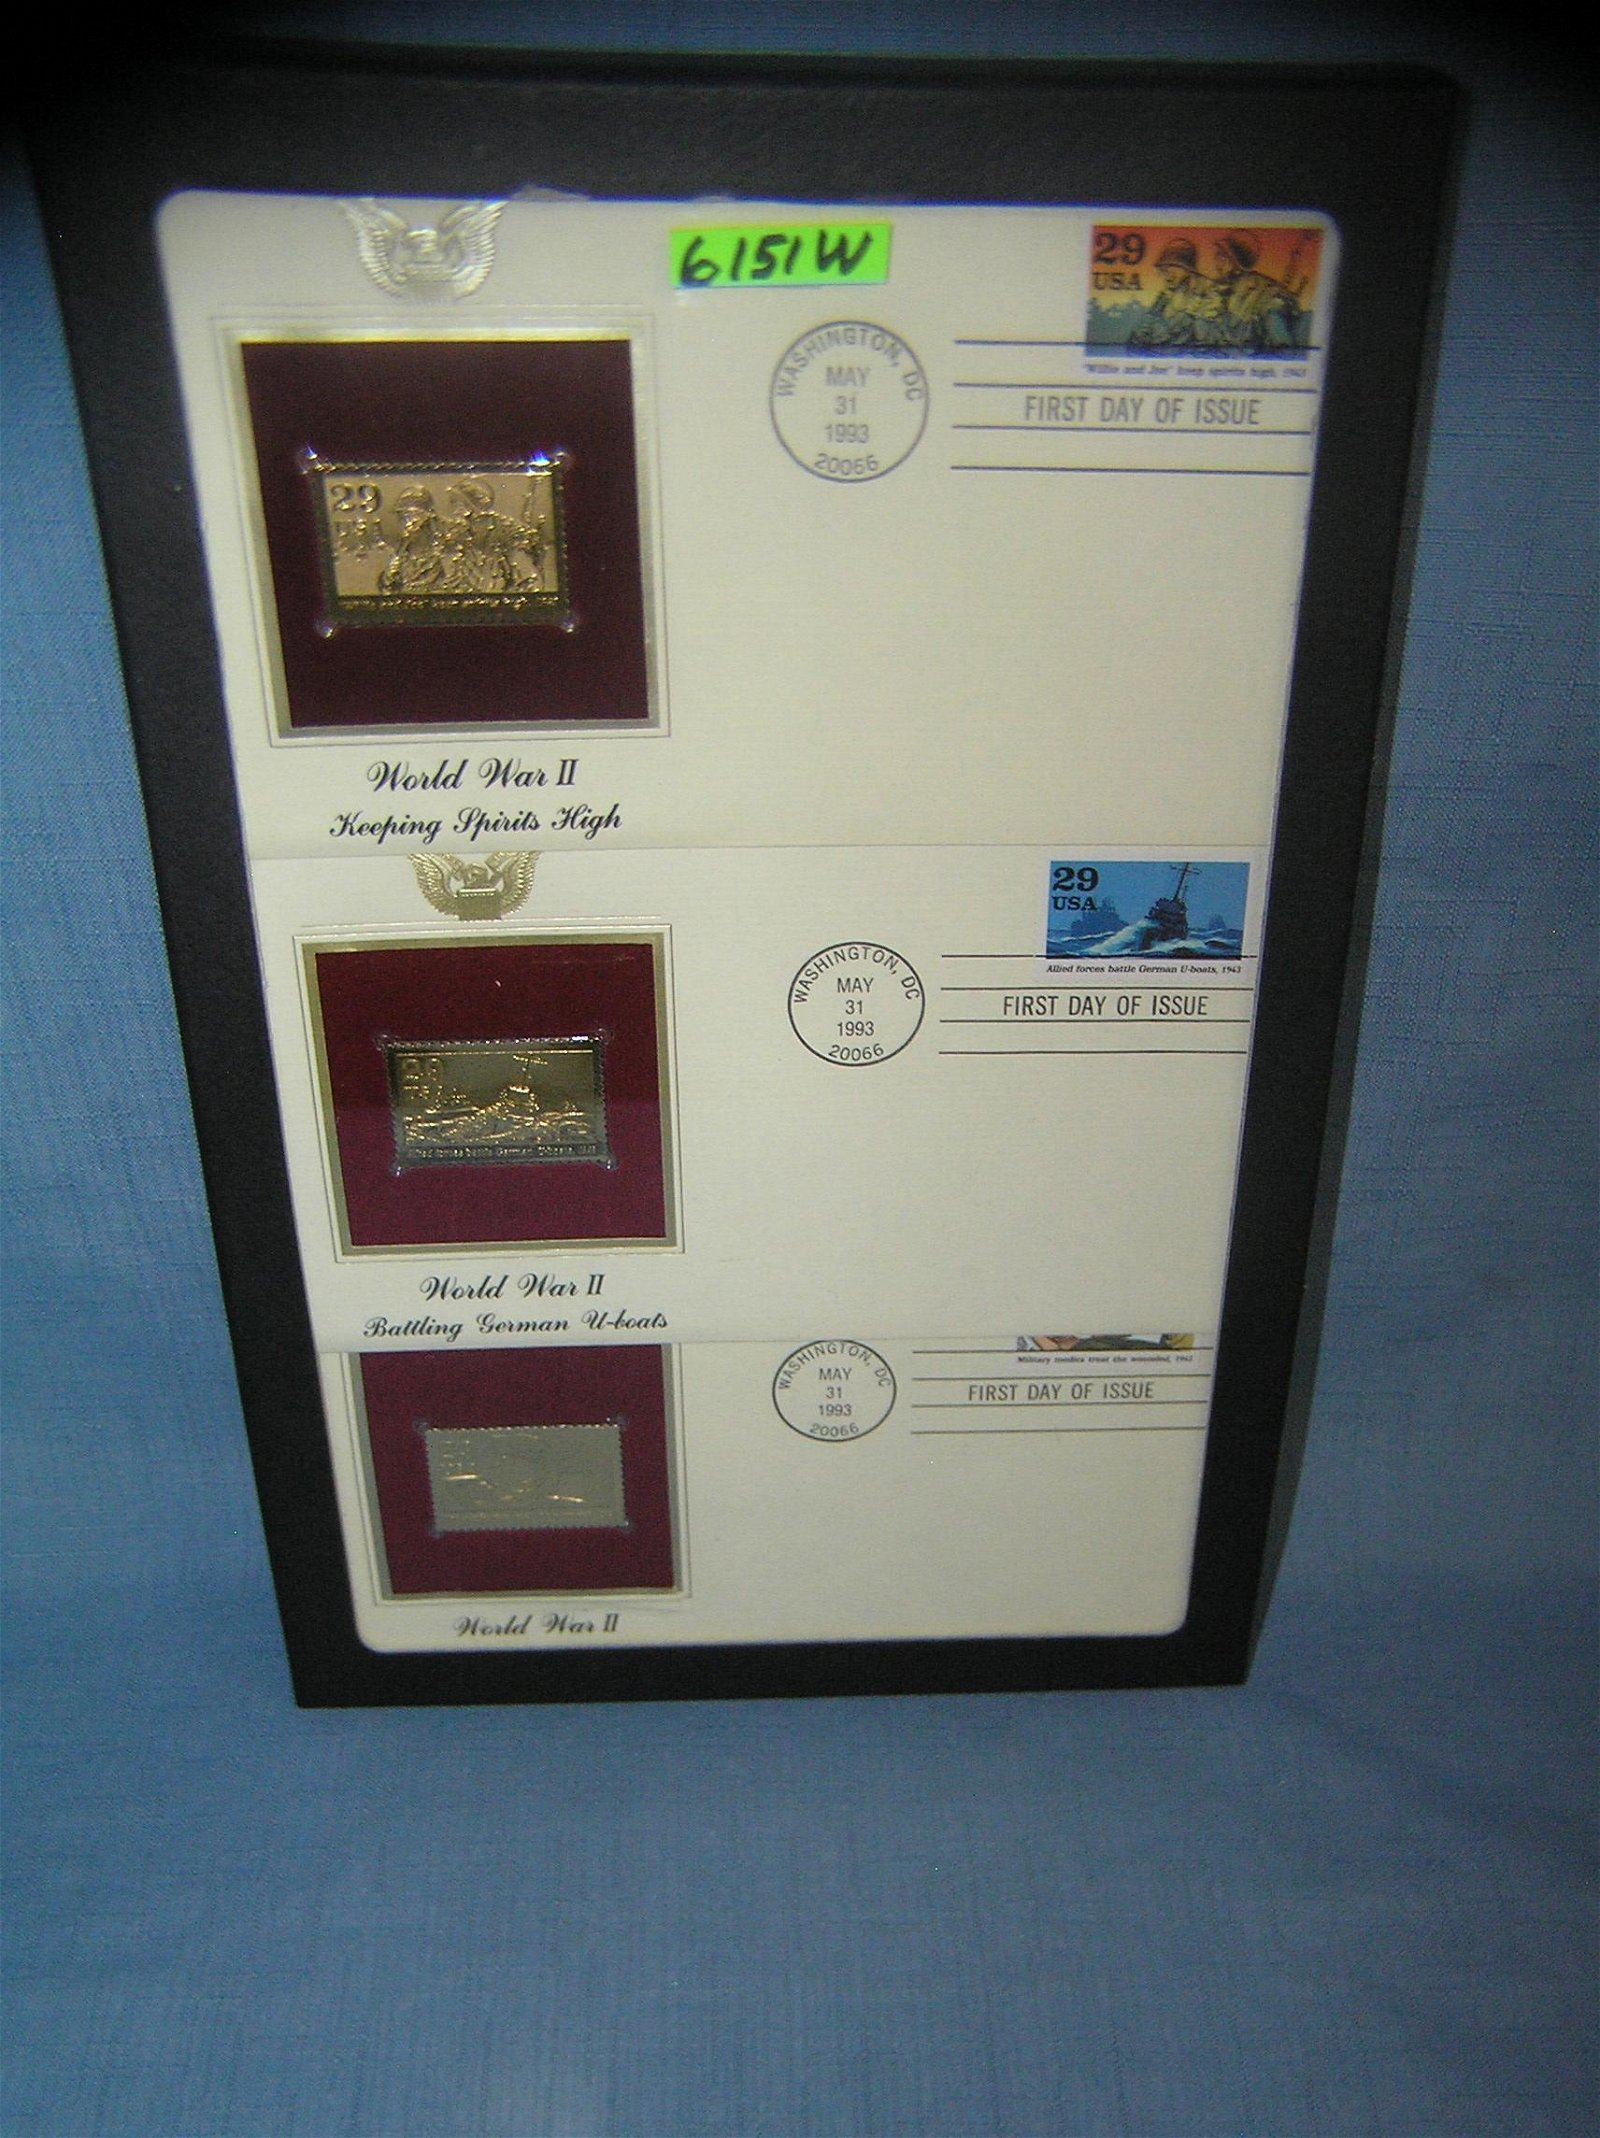 WWII themed first day covers and gold tone stamps